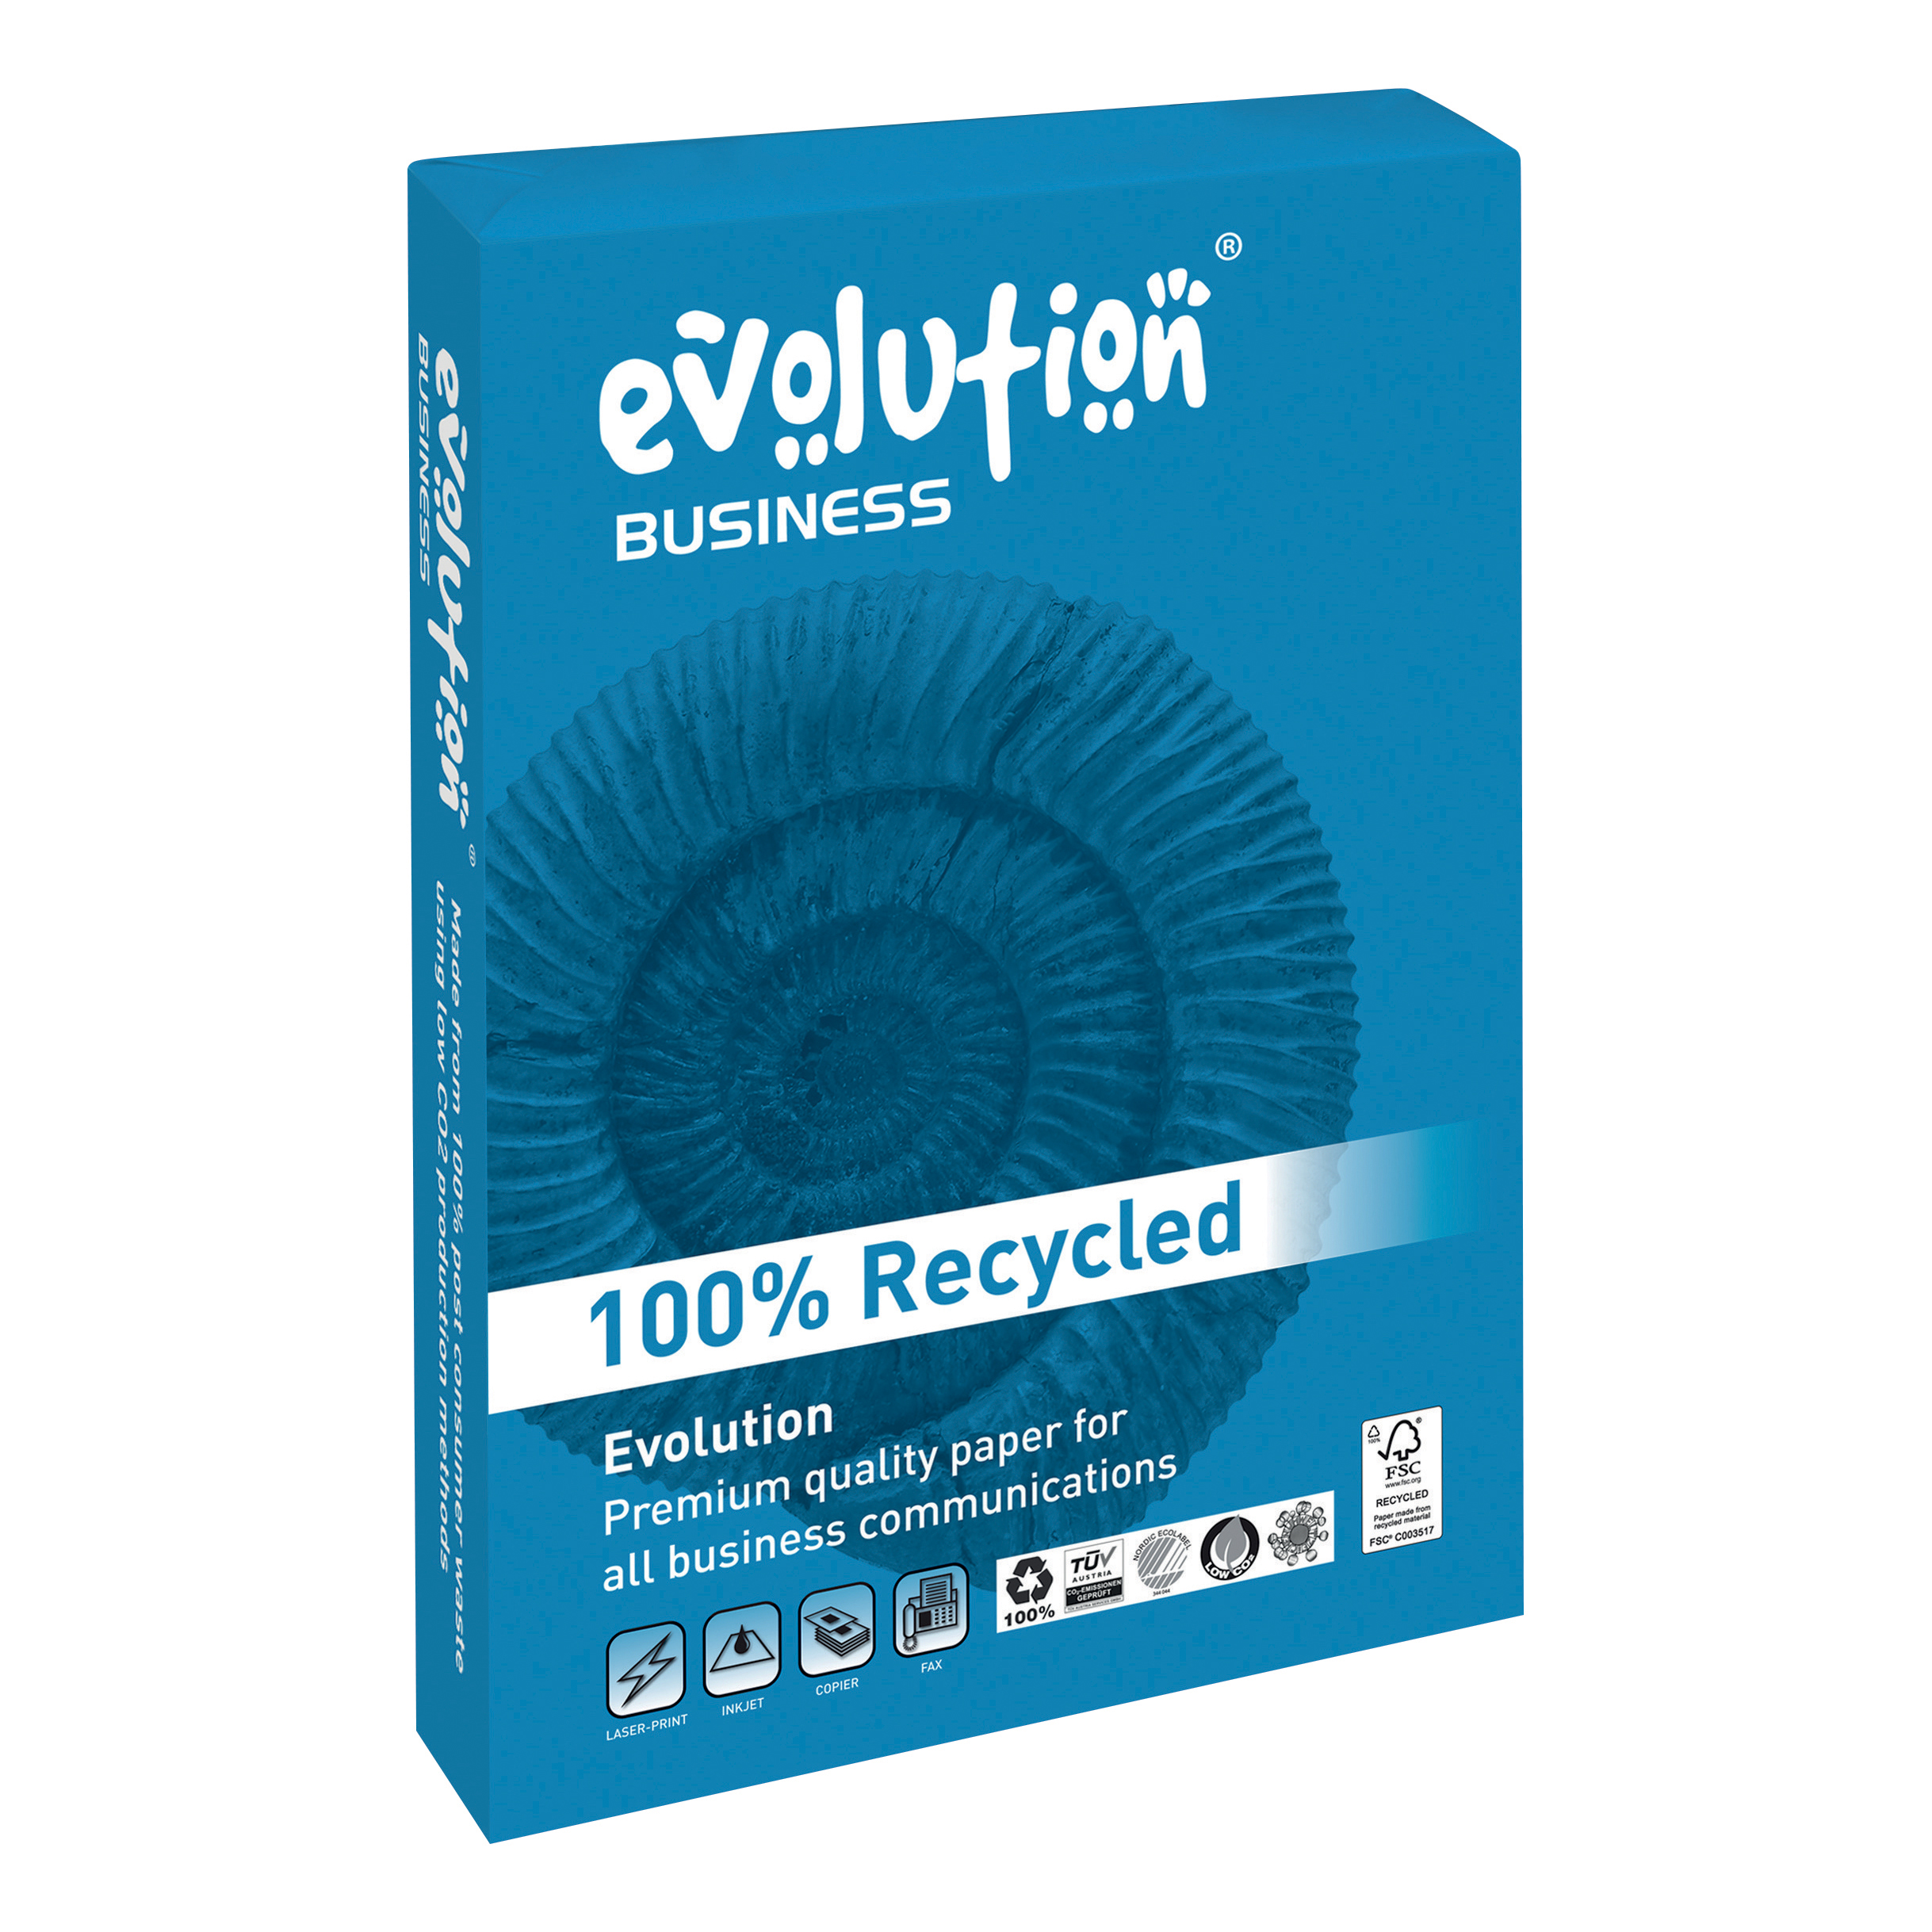 Evolution Business Paper FSC Recycled Ream-wrapped 100gsm A3 White Ref EVBU2100 500 Sheets